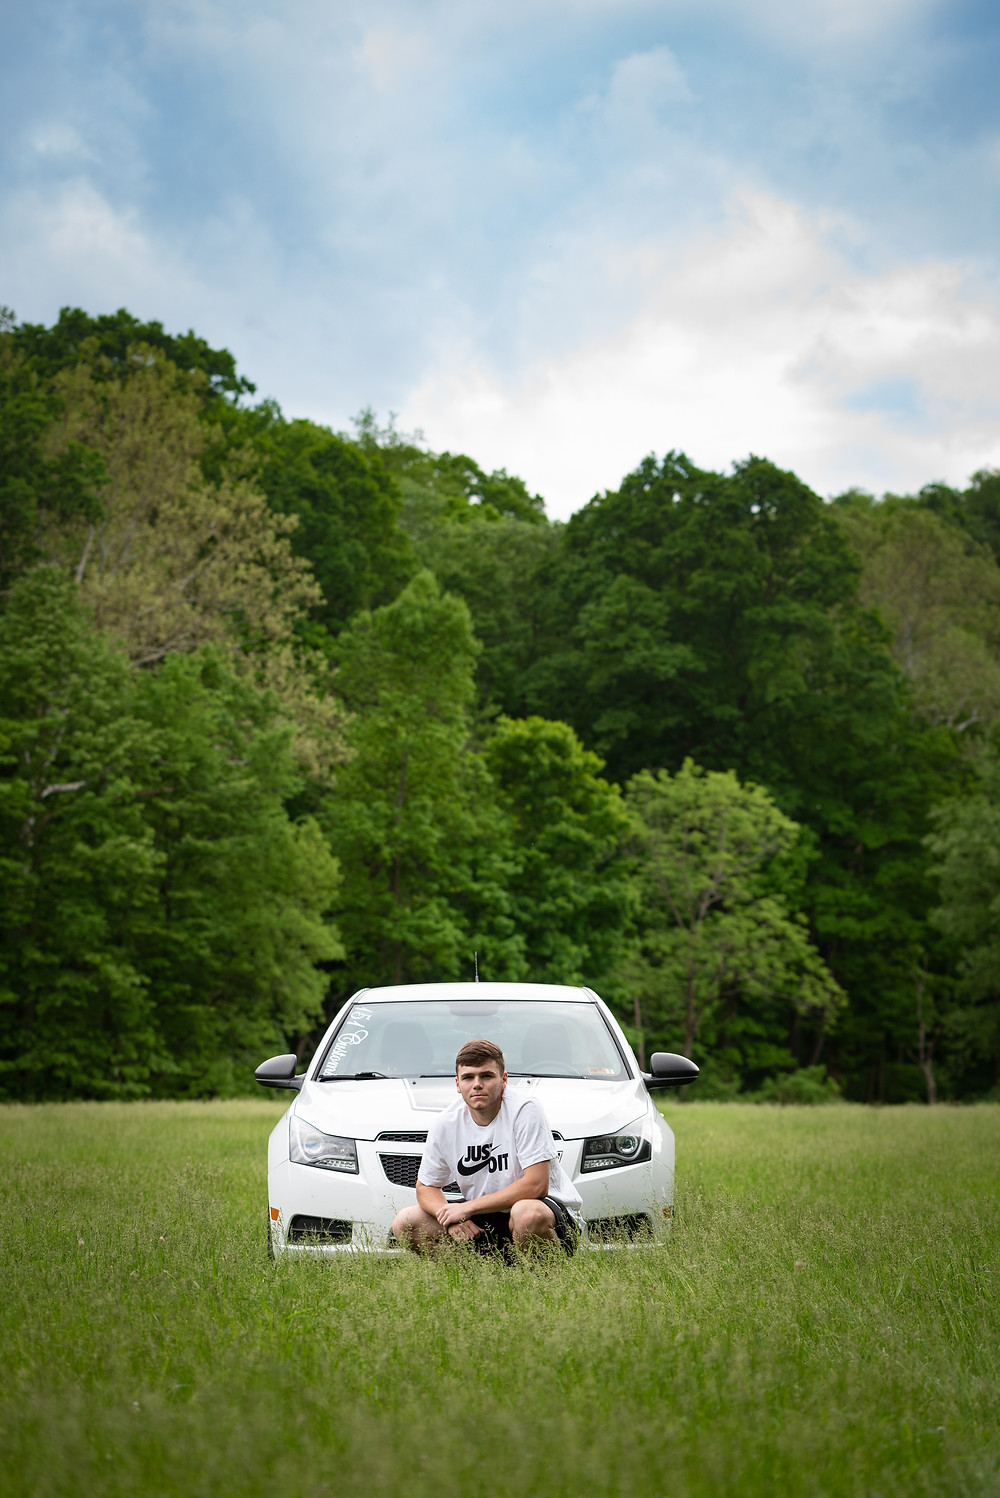 Pittsburgh senior guy photography session with his car at a park